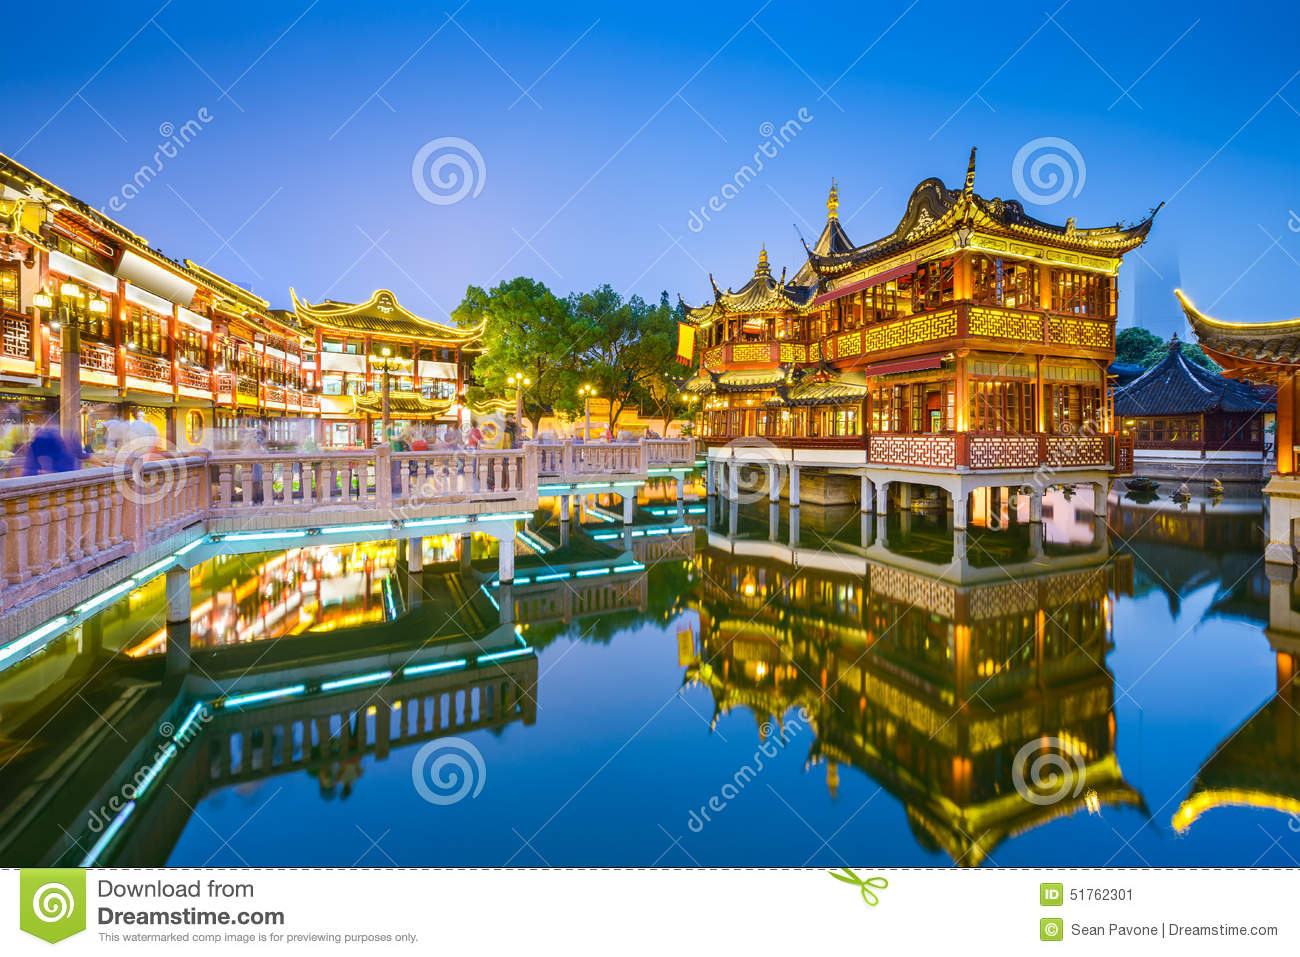 Yuyuan Shanghai Stock Photo - Image: 51762301